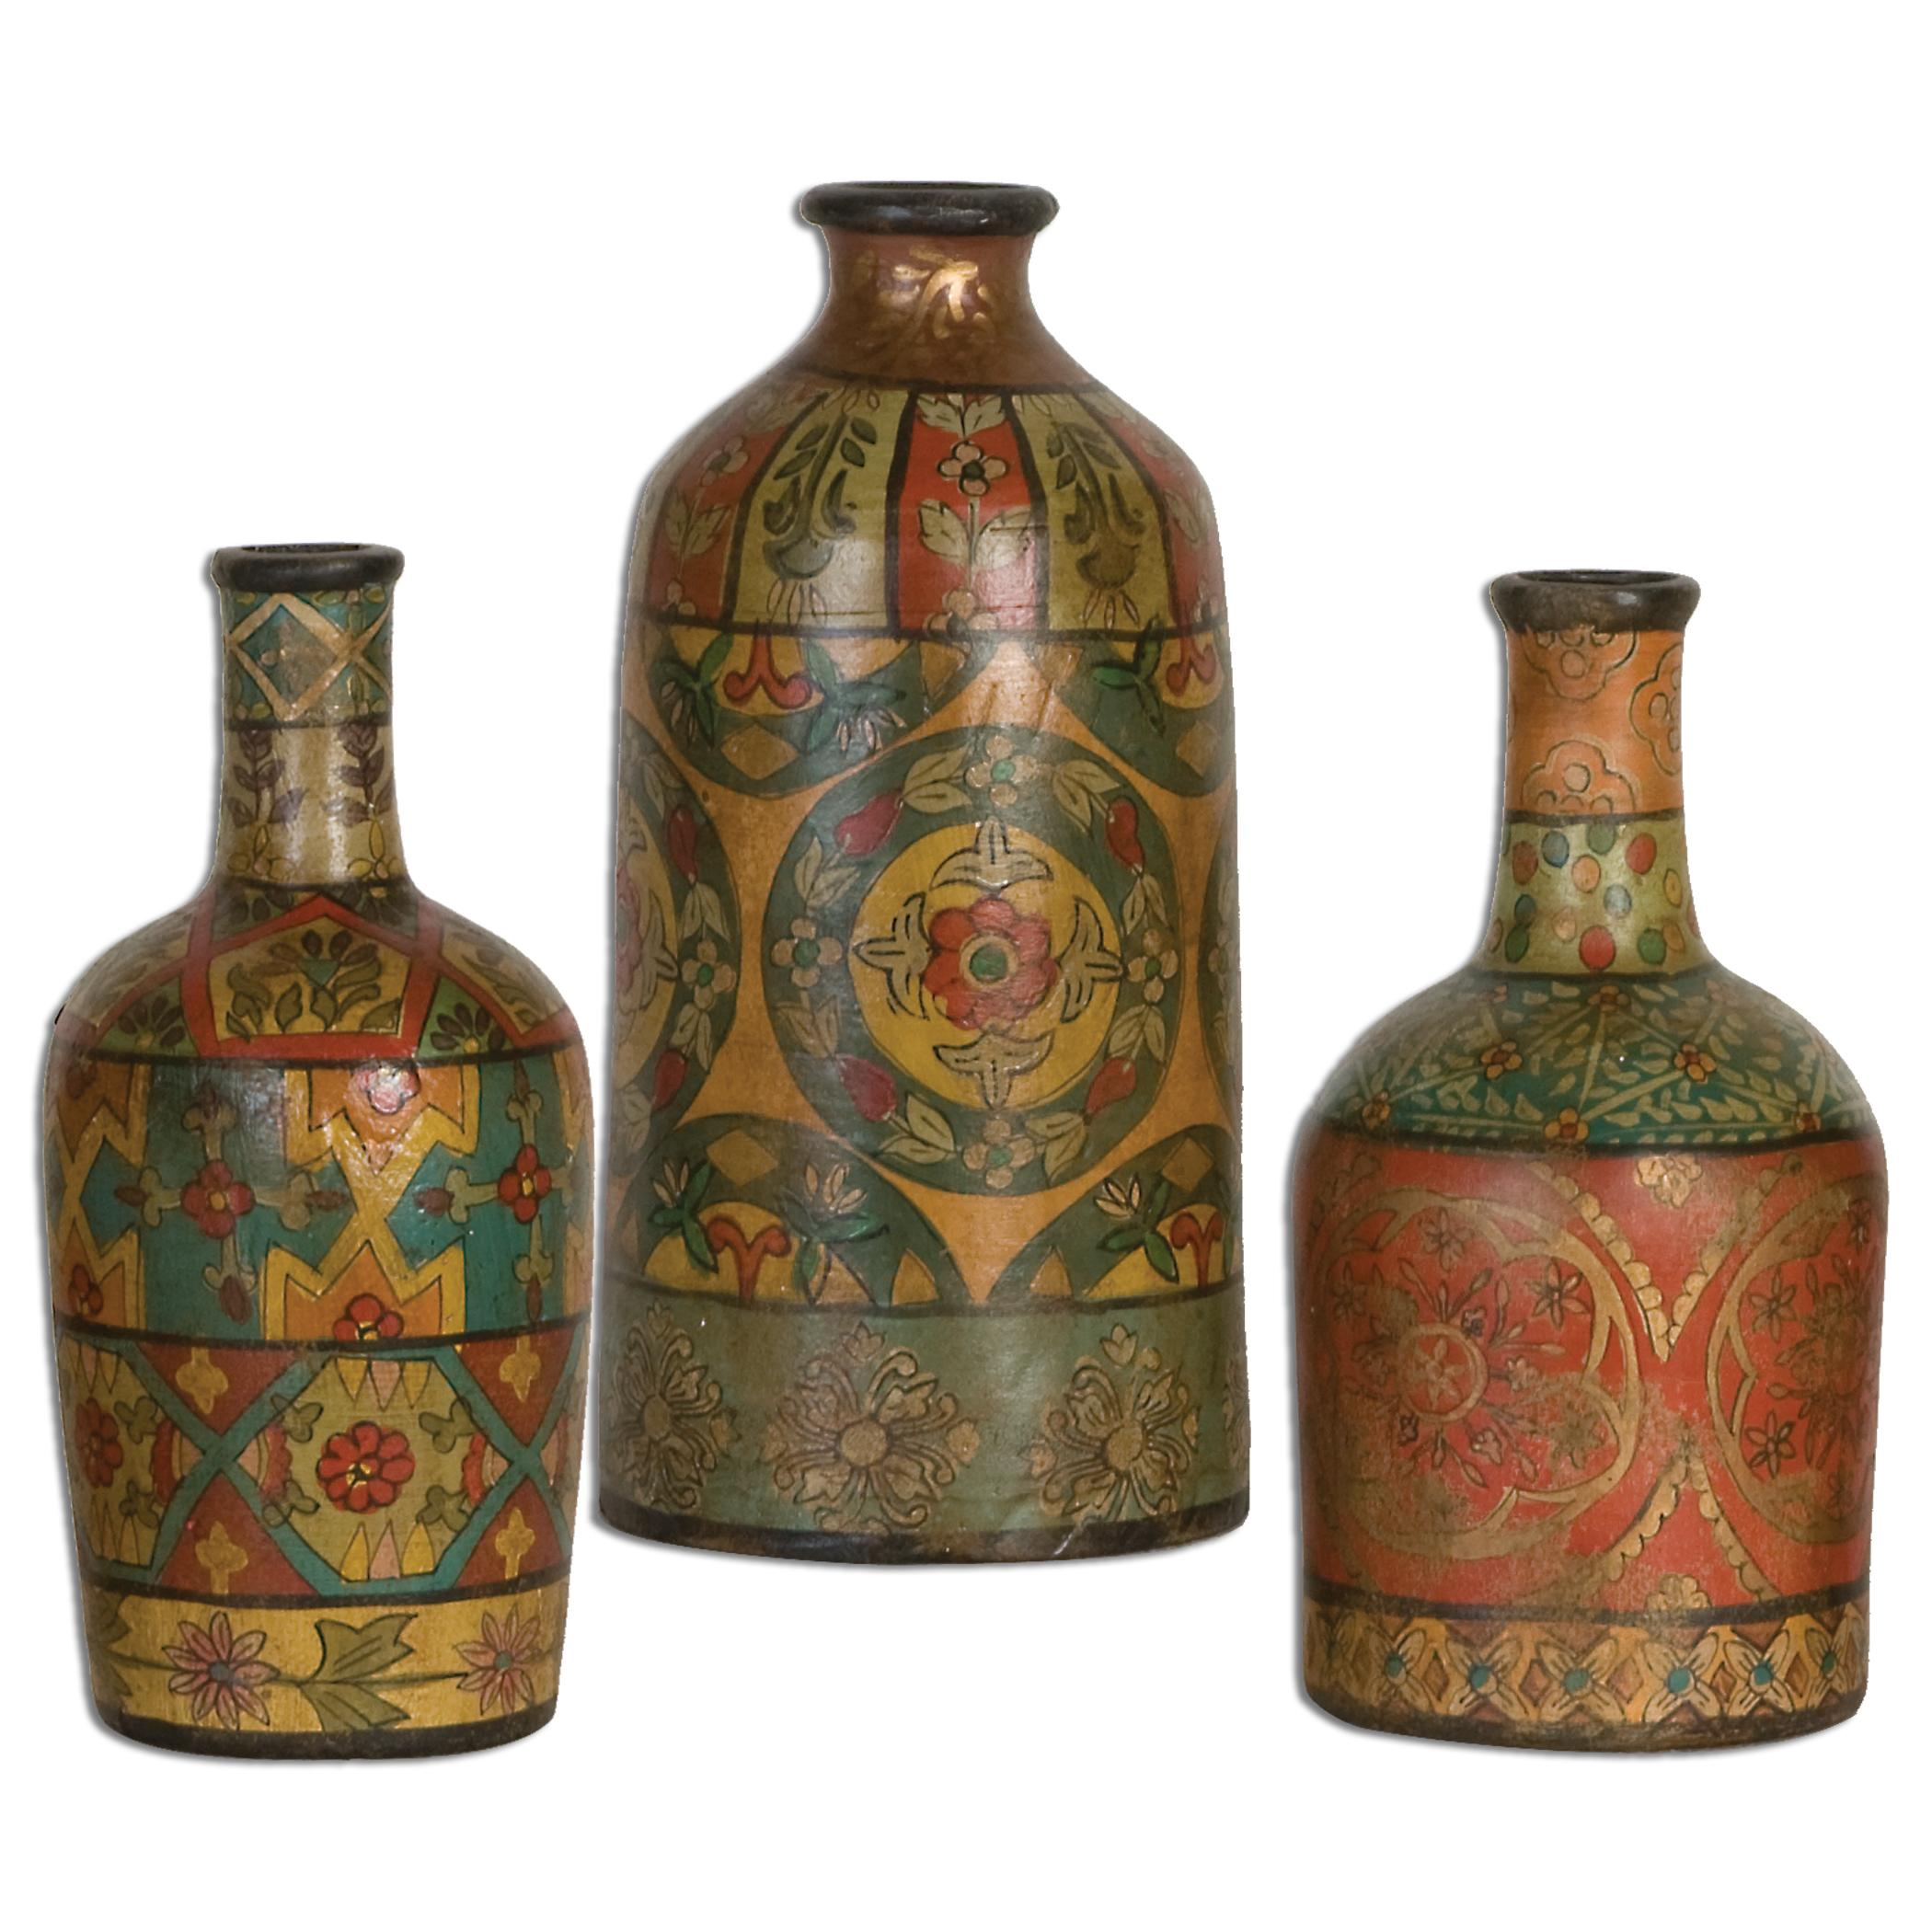 Uttermost Accessories Sachi Terracotta Vases, Set of  3 - Item Number: 19814